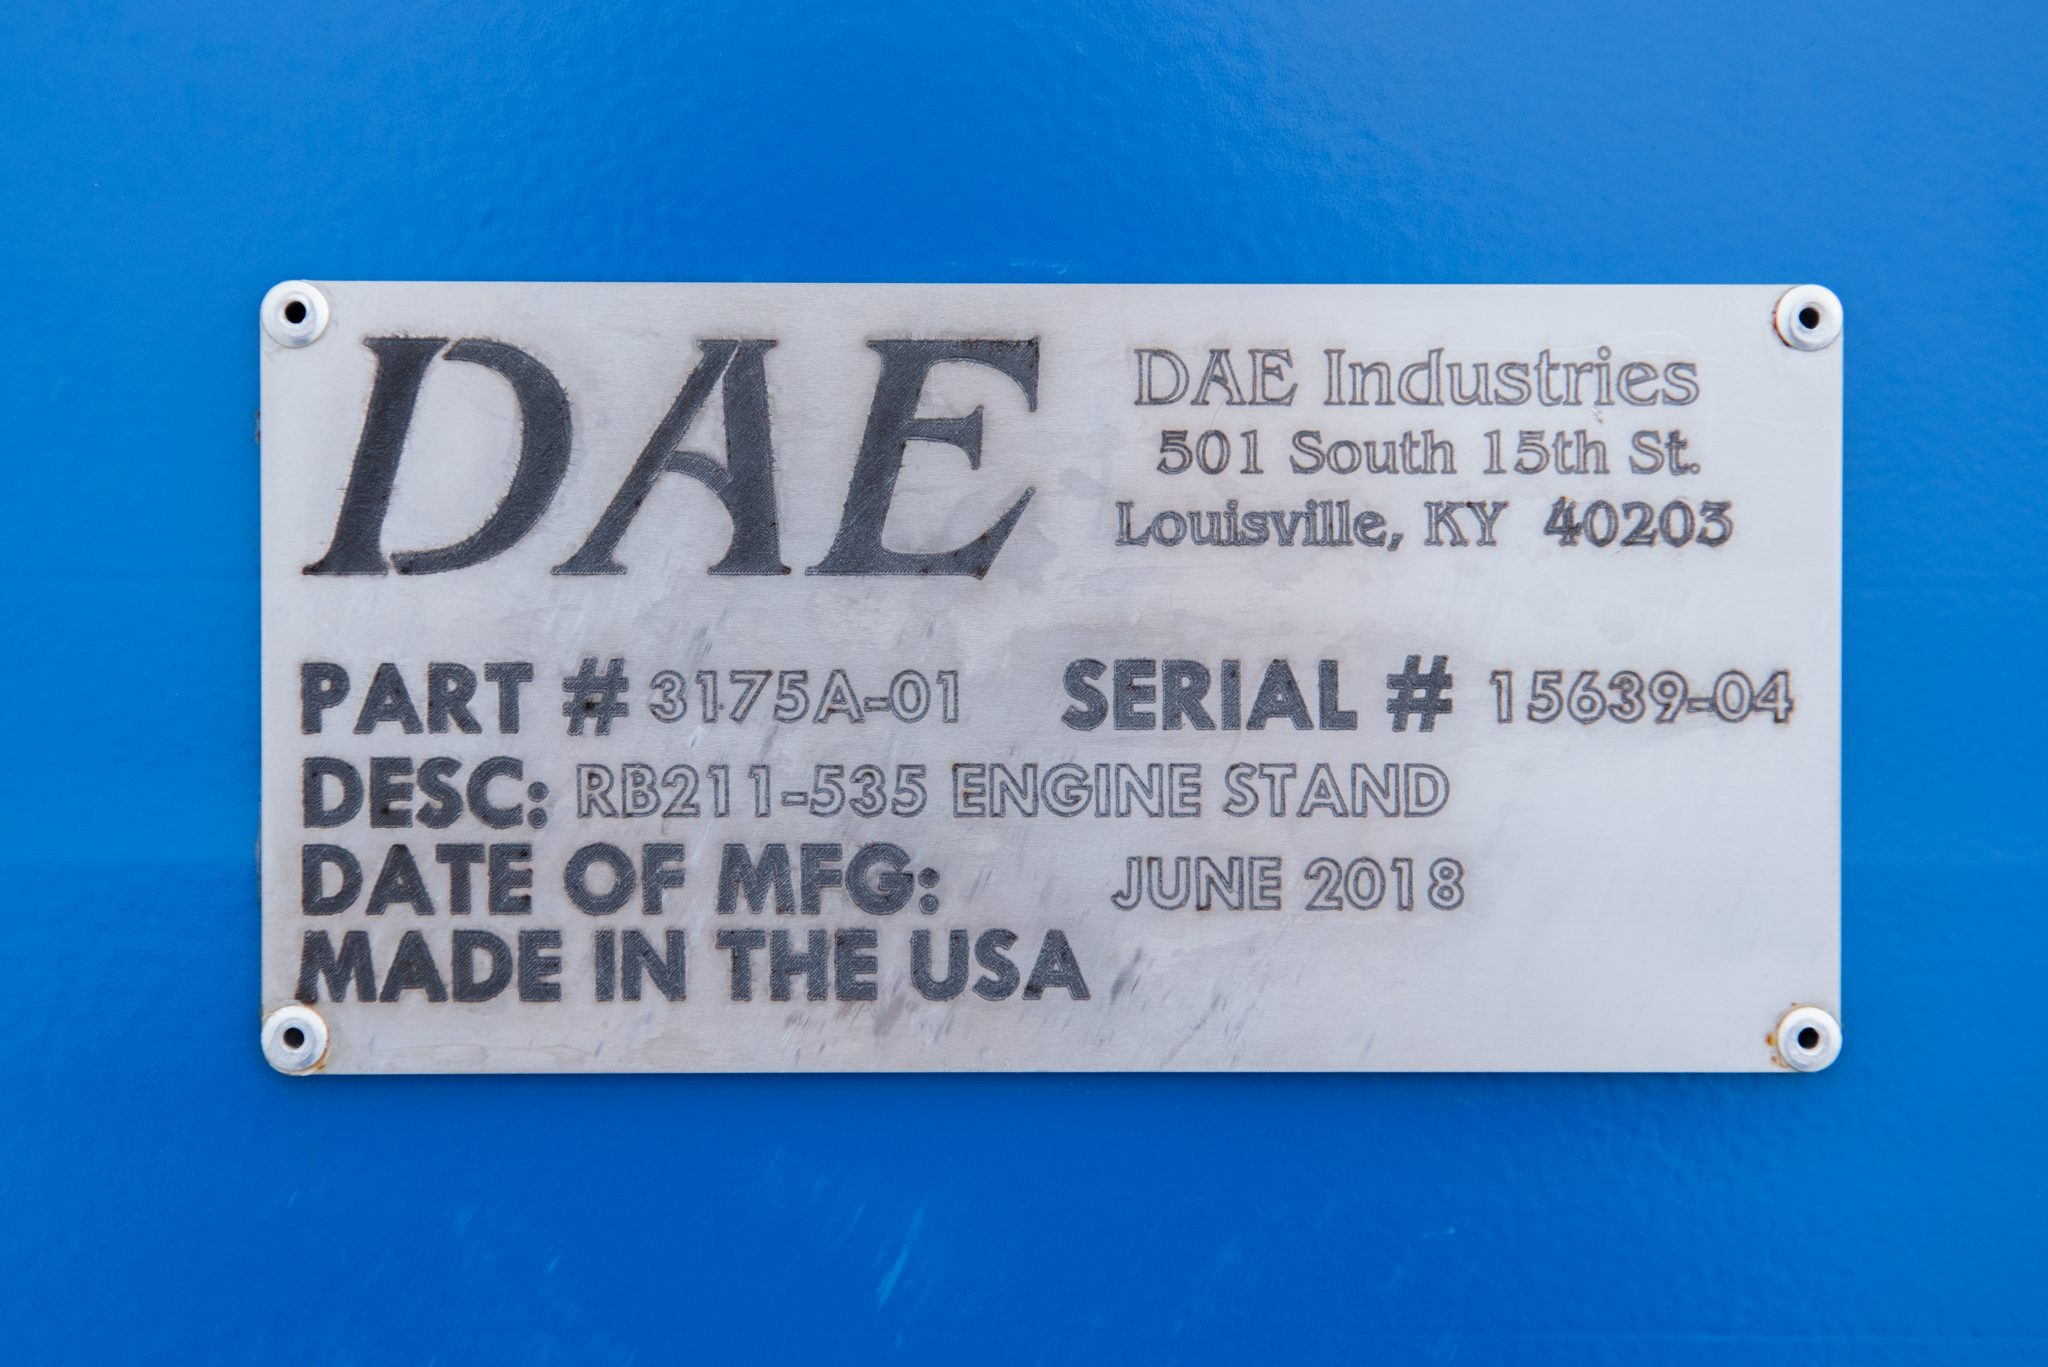 RB211-535 DAE serial number